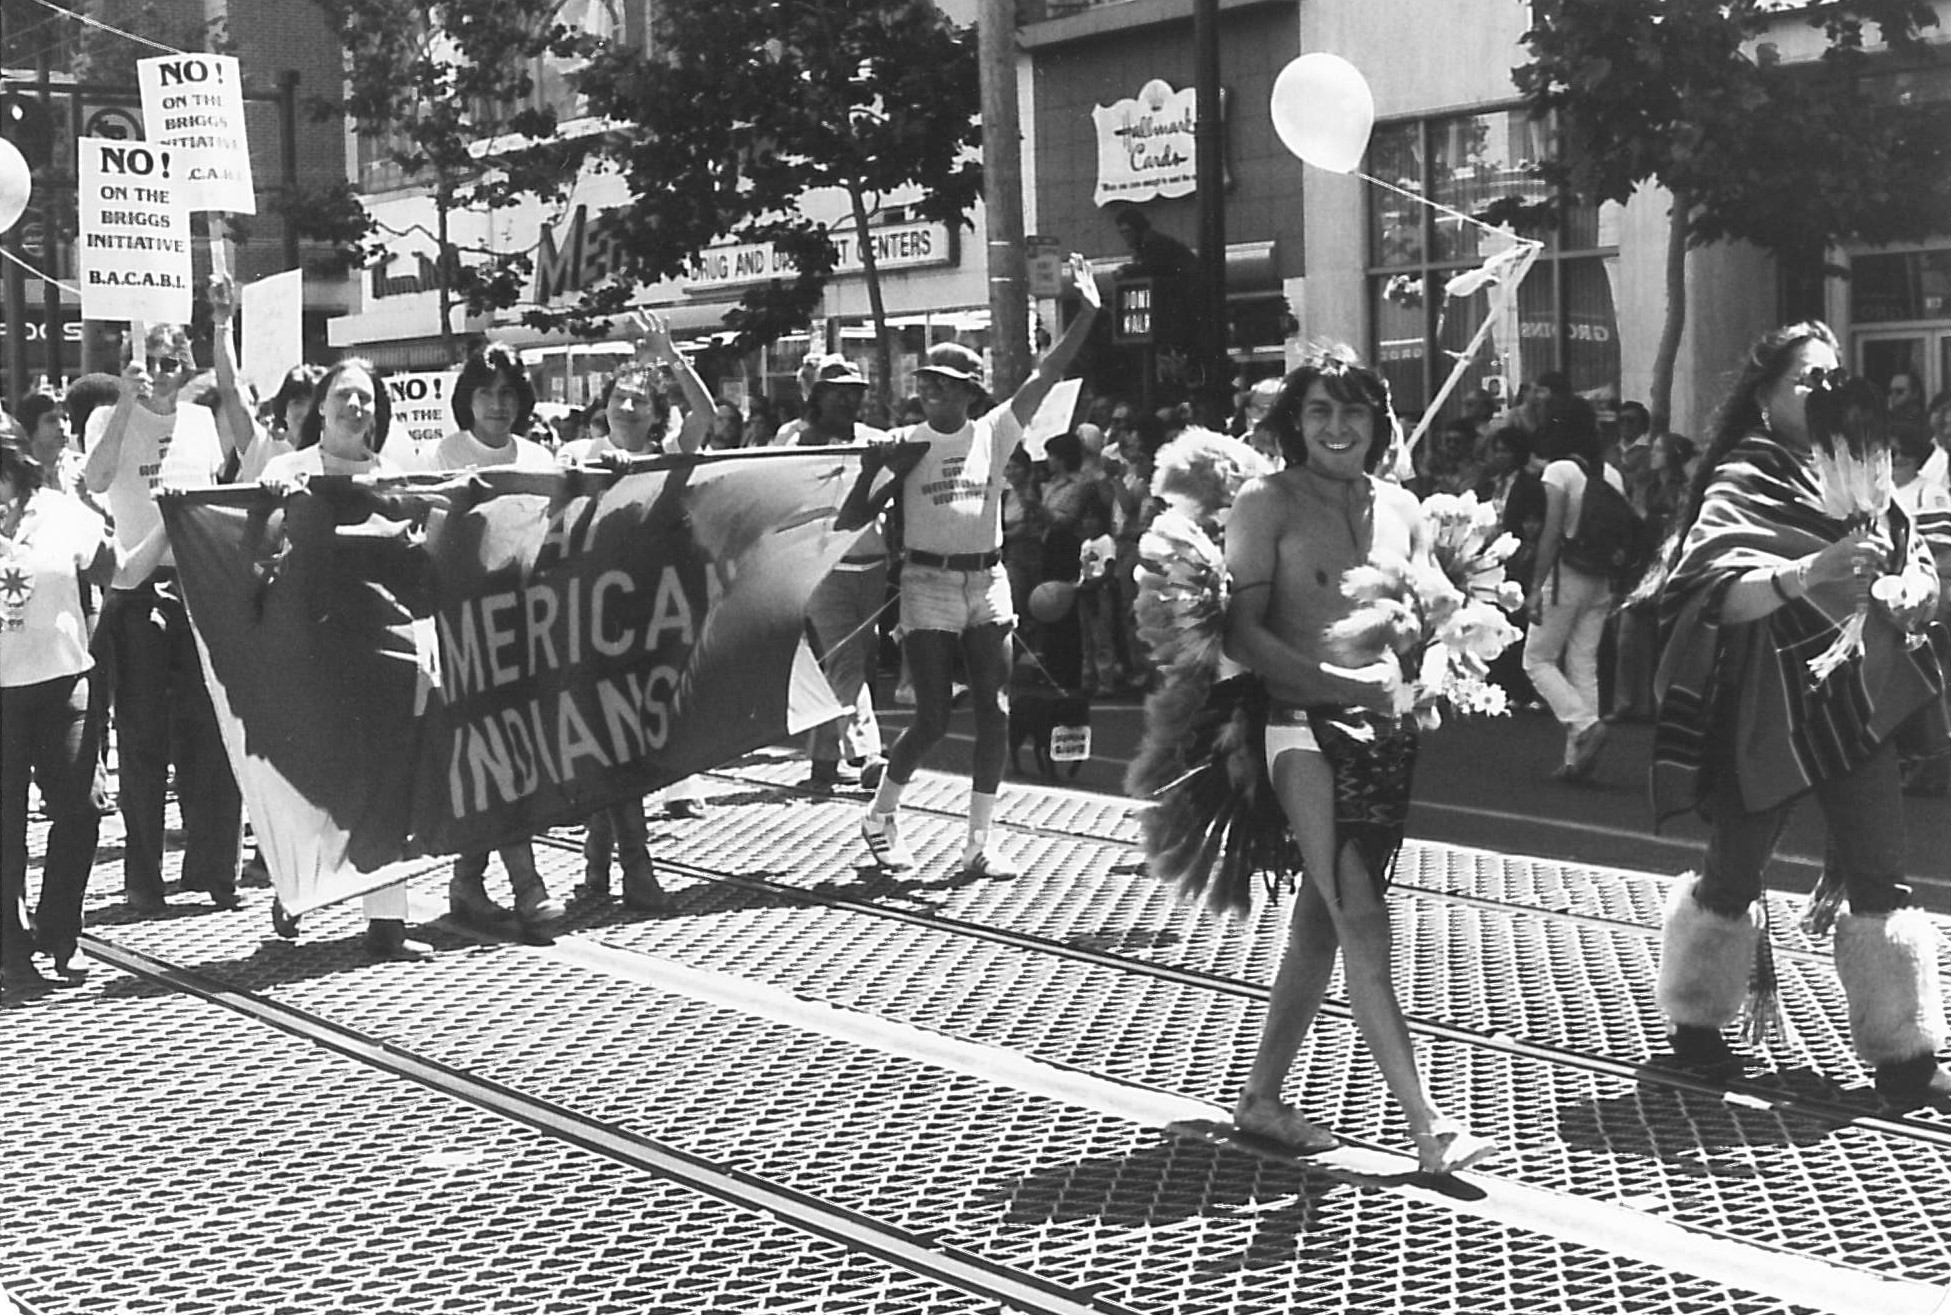 Elaine Gay Jarvis, Gay American Indians contingent in the 1978 Gay Freedom Day parade (1978), Elaine Gay Jarvis Papers (2018-90), GLBT Historical Society.